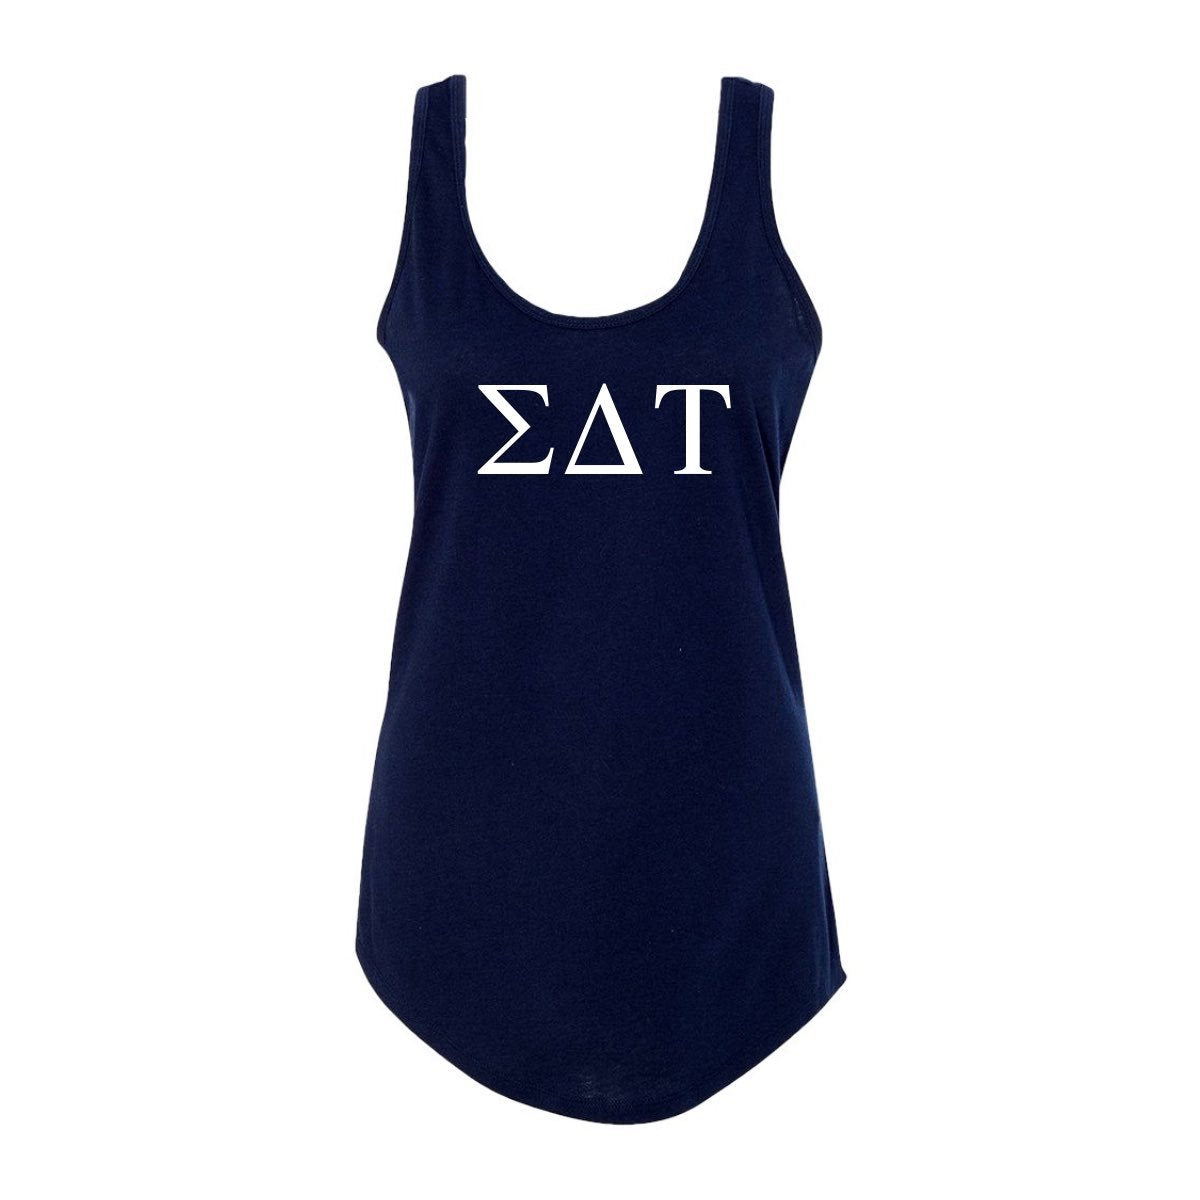 Navy Blue Sigma Delta Tau Tank top with Large Greek Letters on front. Perfect sorority tank top for swimsuit coverup or oversized nightshirt.